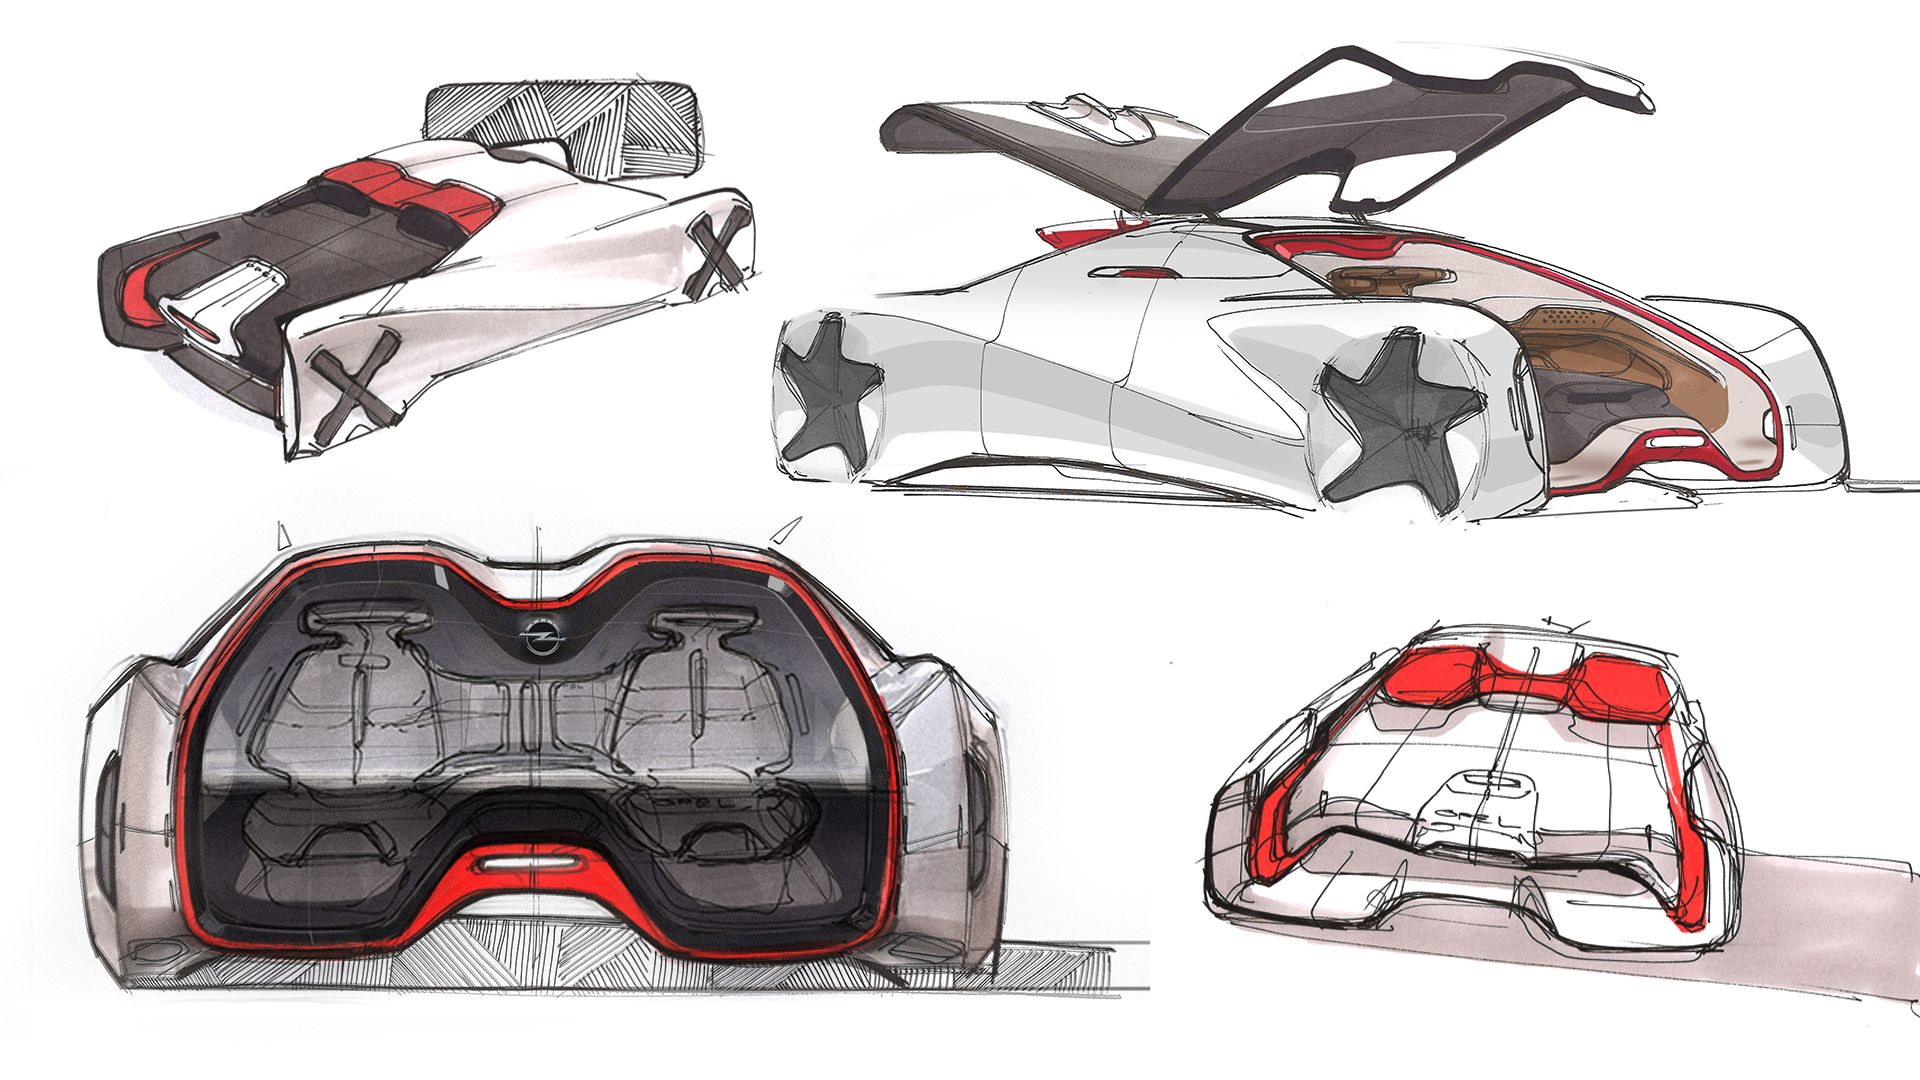 Pin di giovanni duc su transportation design exterior pinterest car design sketch car - Imitazioni mobili design ...